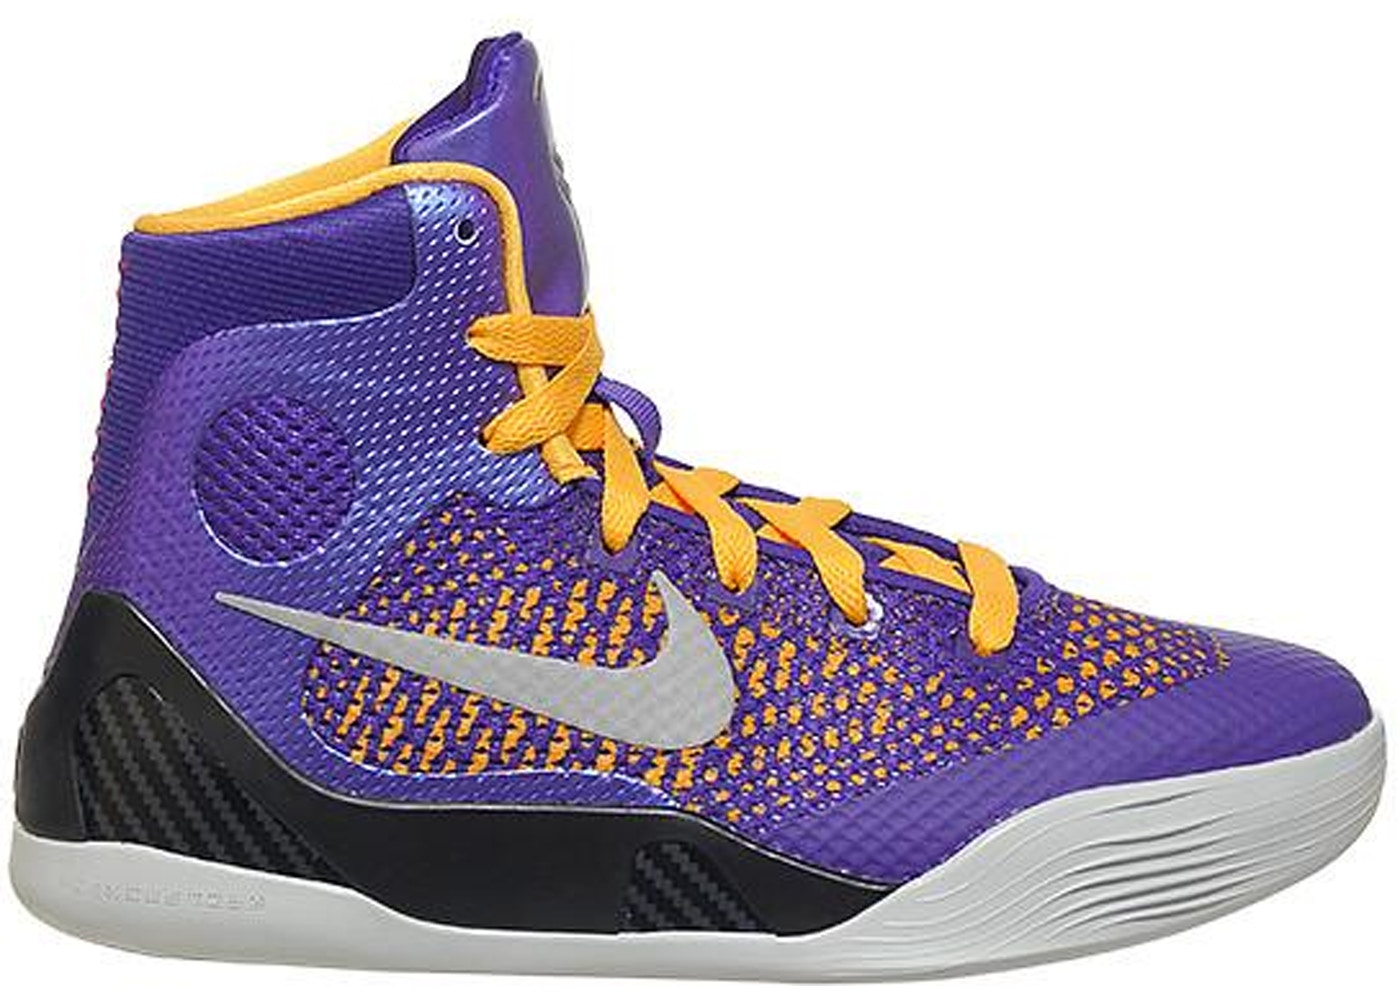 Nike Kobe 9 Shoes - Lowest Ask 6dd590d7c